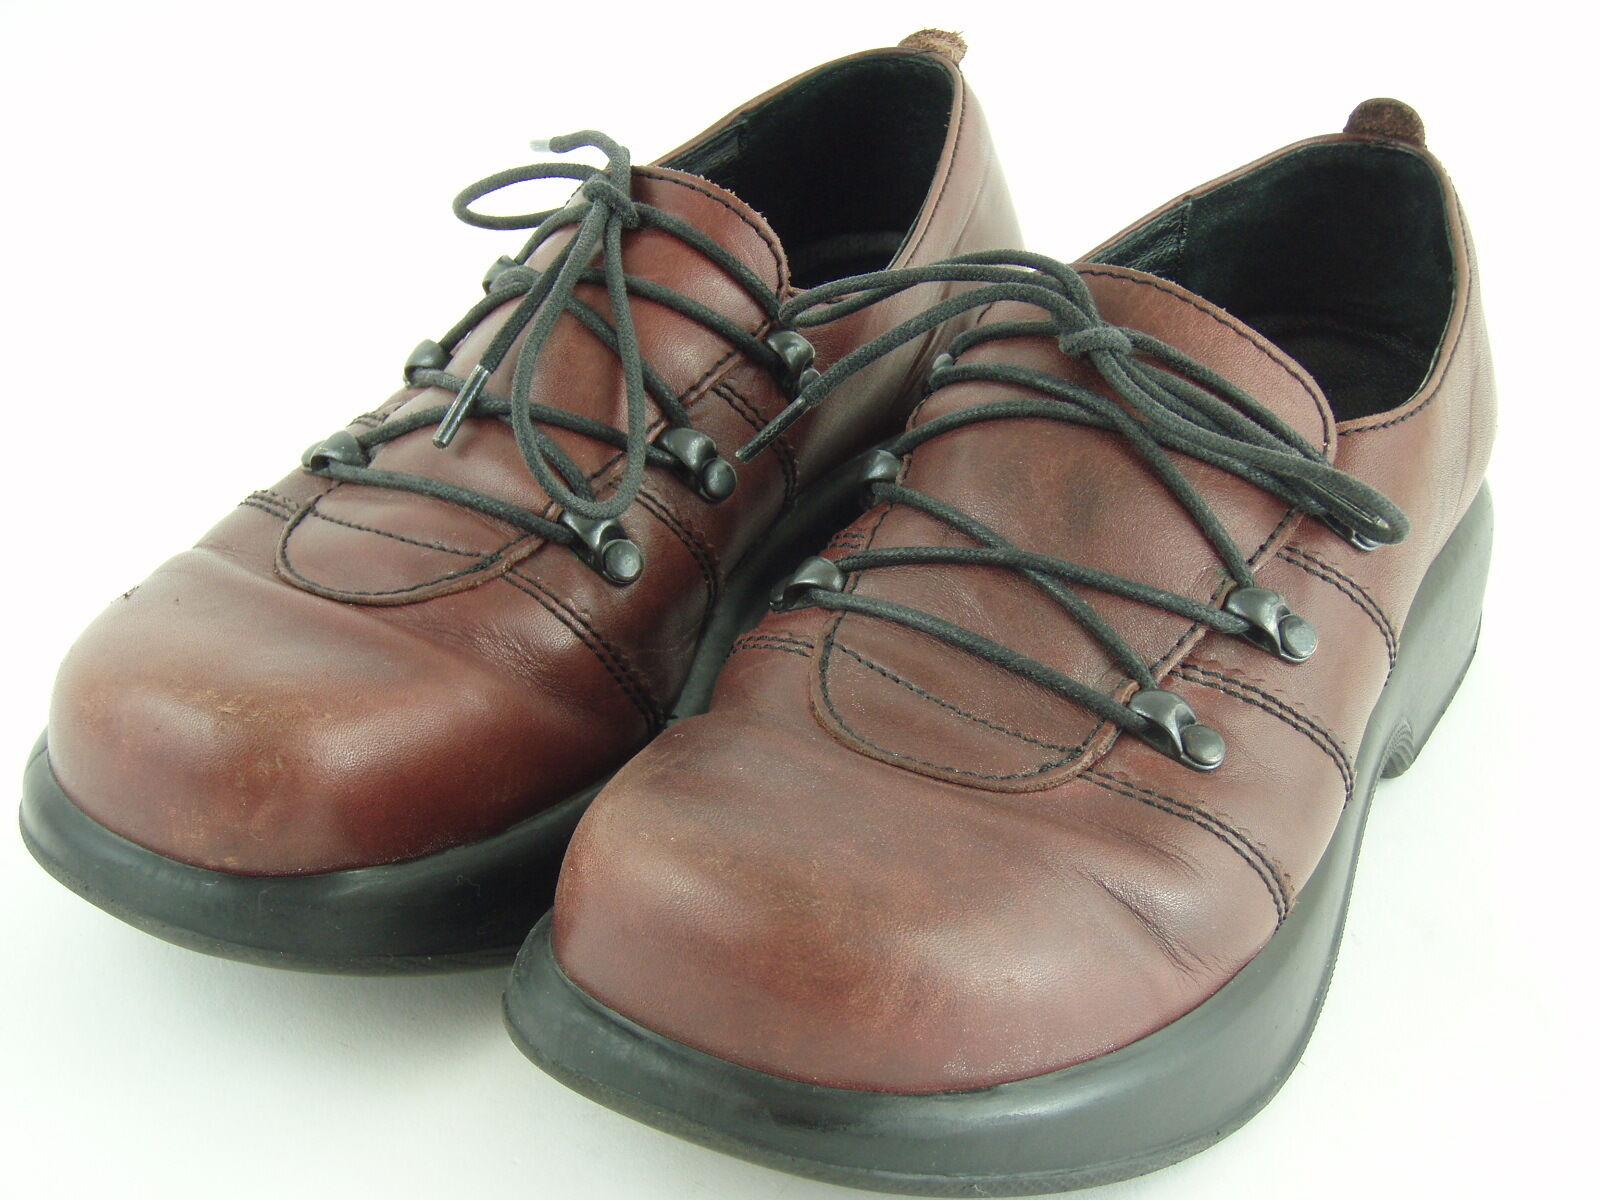 DANSKO Brown Leather Oxford Lace Up shoes - Women's 9 US or 39 EUR - EUC